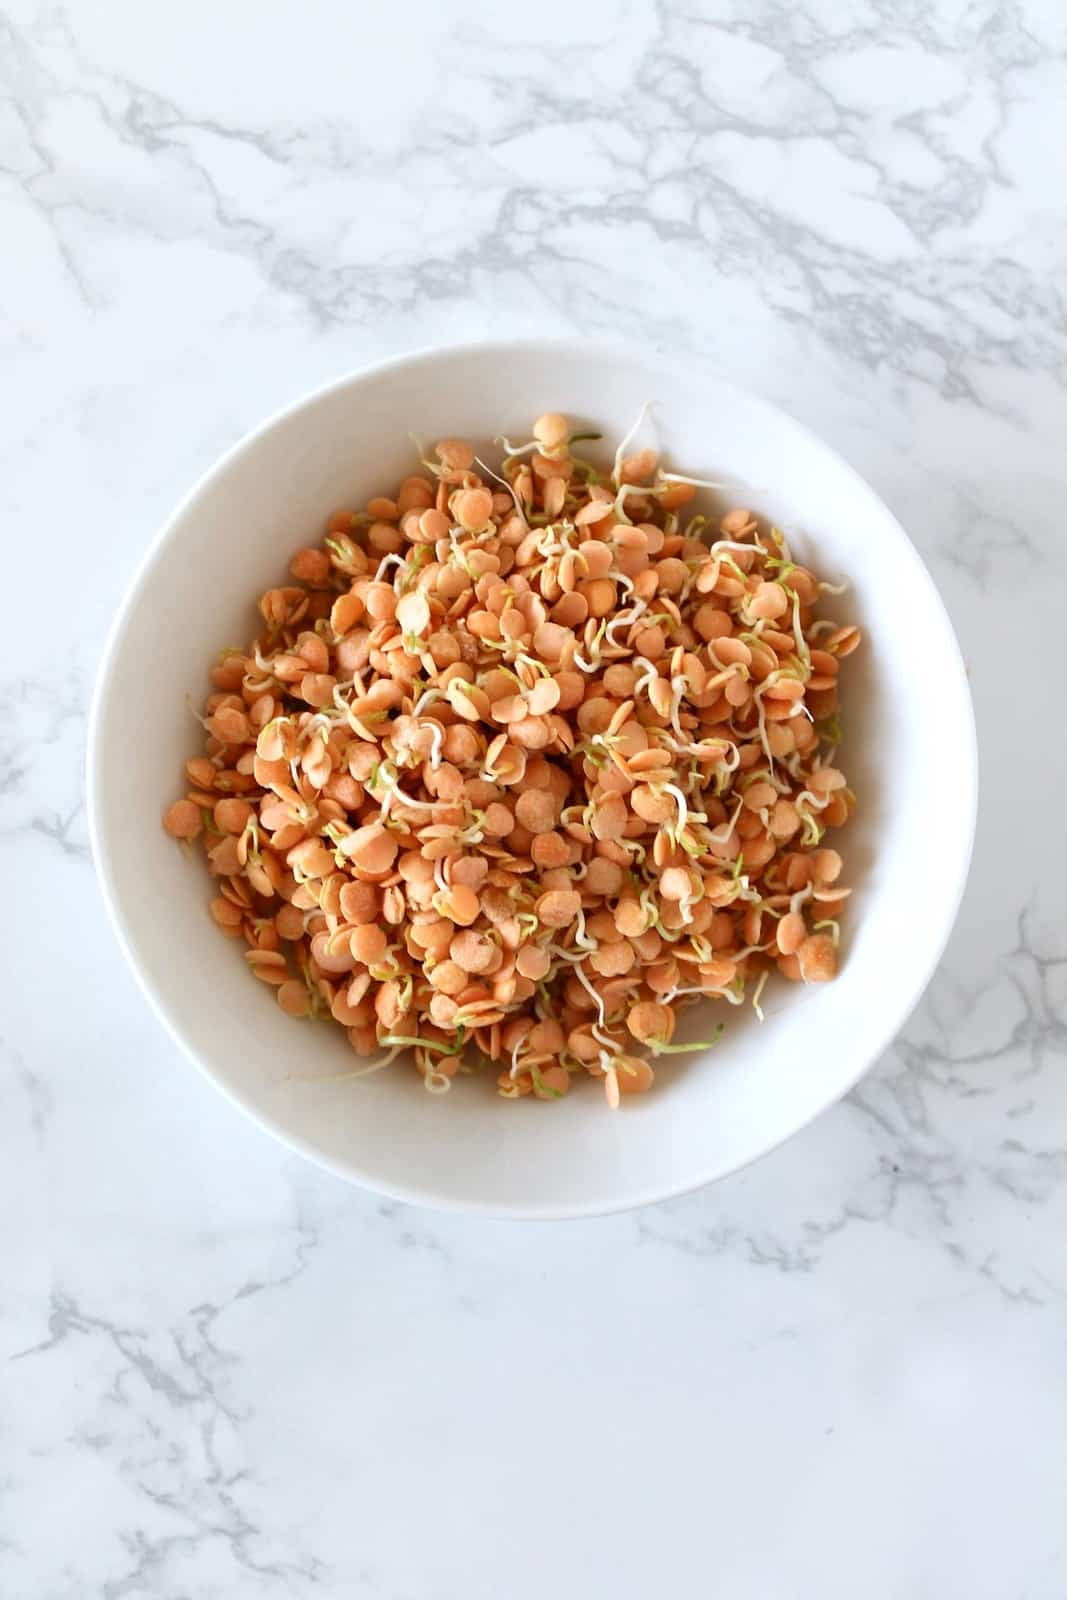 White bowl filled with sprouted red lentils on a white marble surface